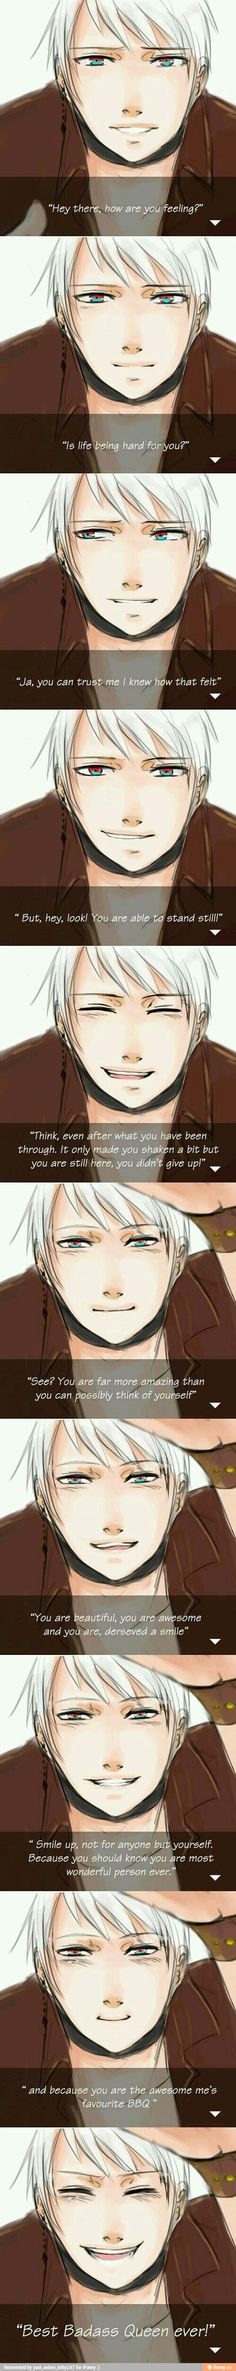 "Thank you Prussia, you made me smile today :"")"